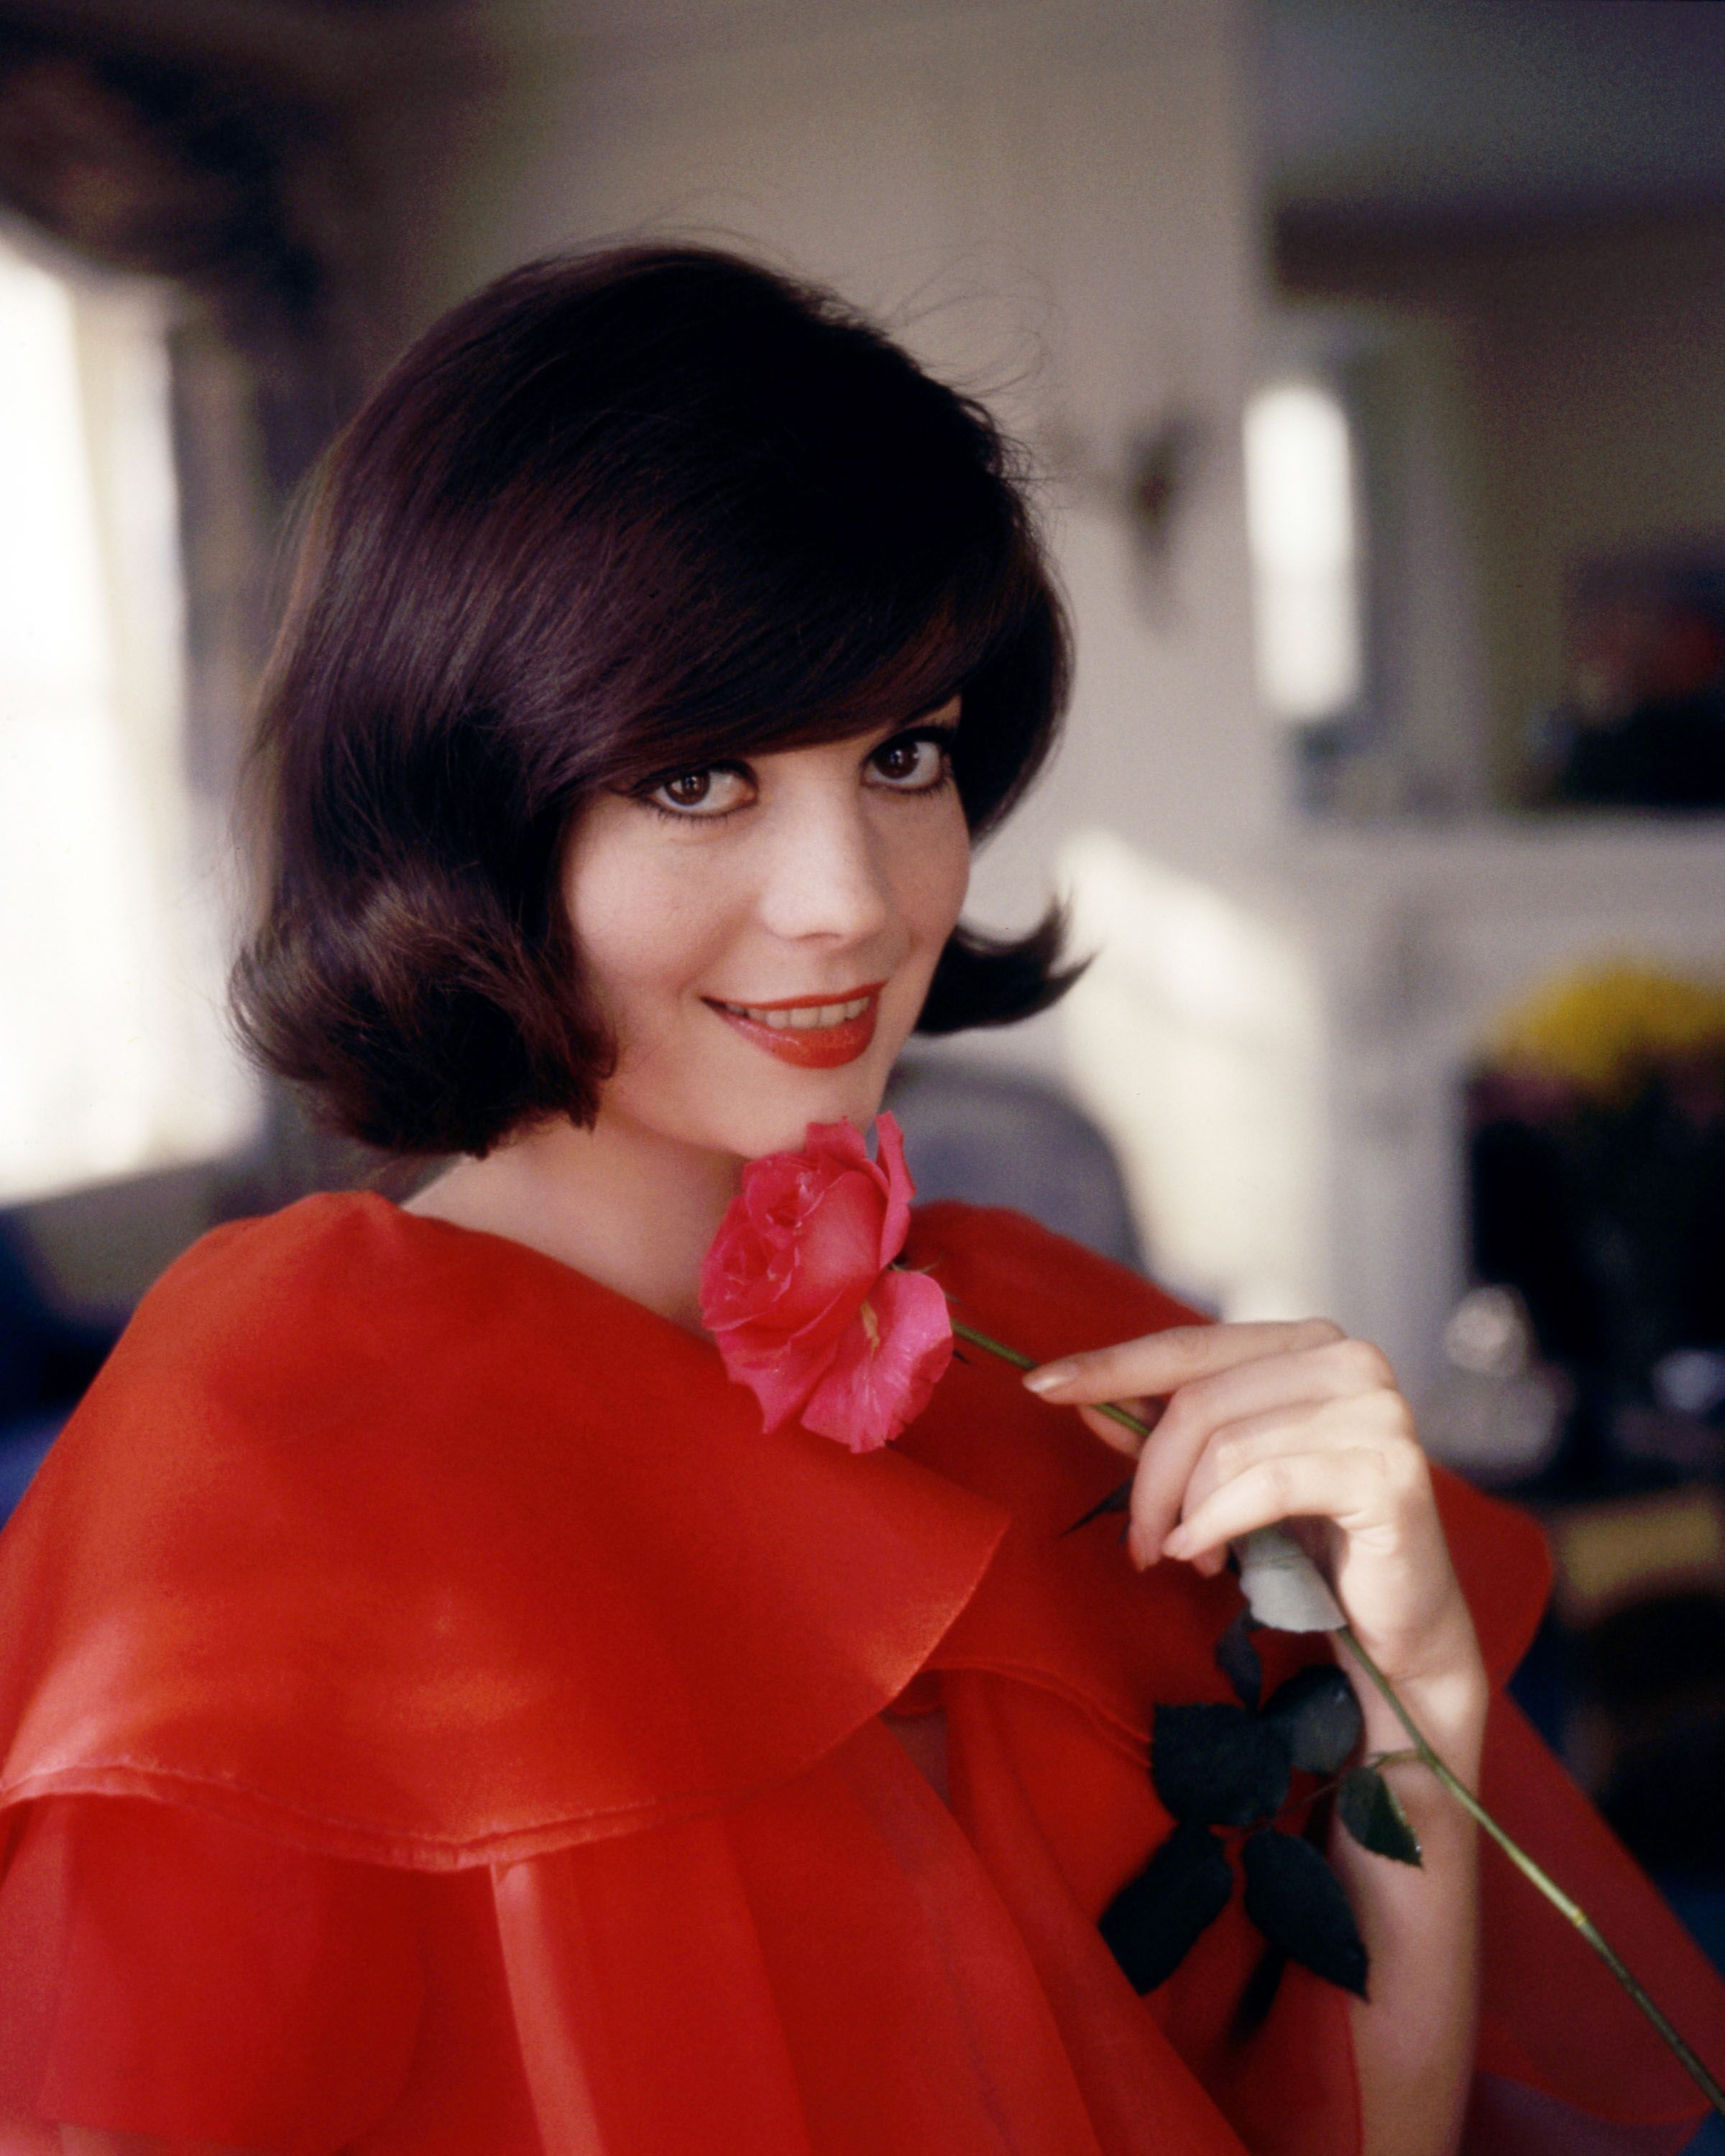 Natalie Wood (1938-1981), US actress, wearing a red top and holding a pink flower, in a studio portrait, against a yellow background, circa 1965. | Source: Getty Images